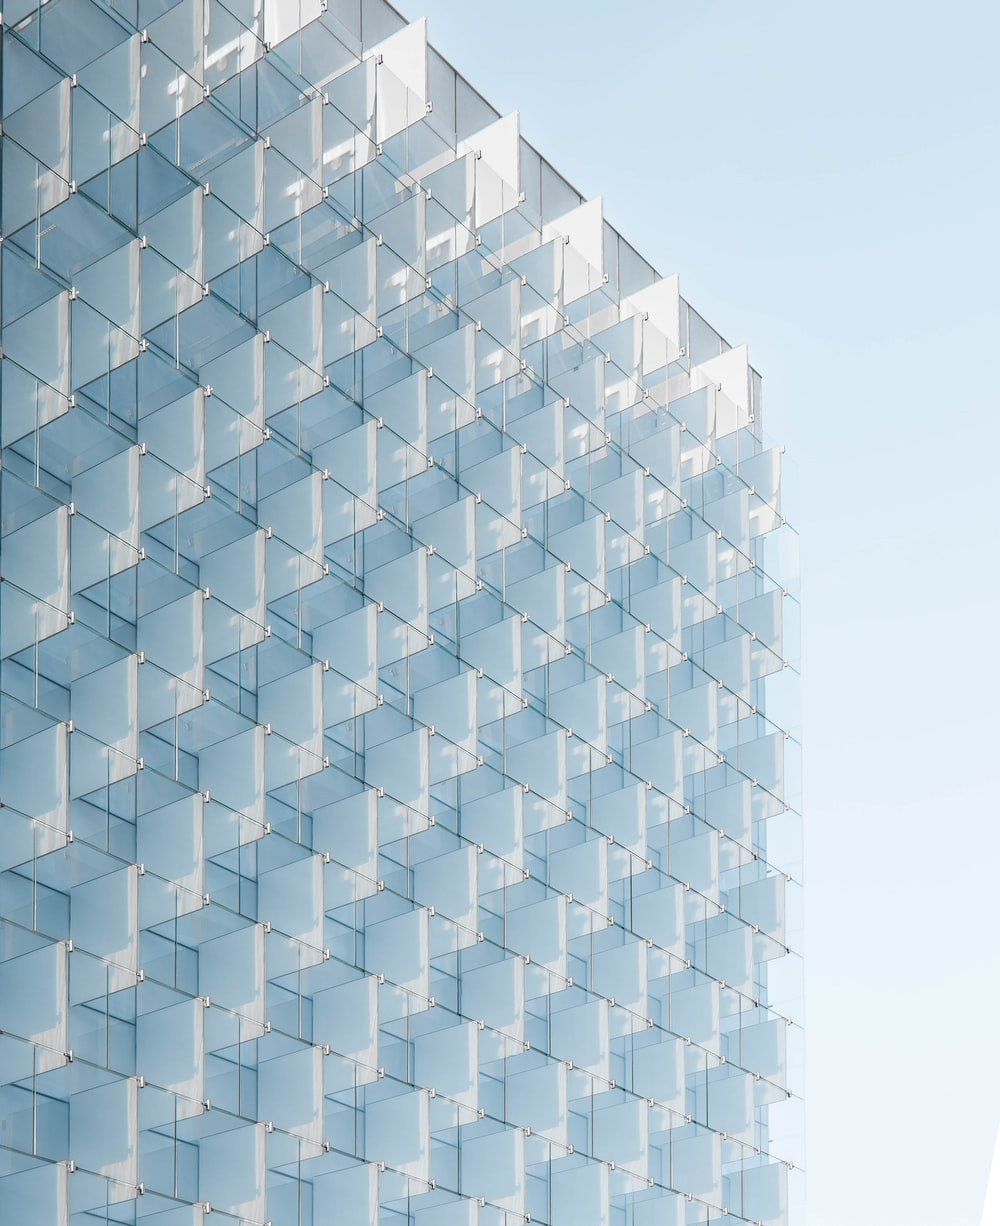 clear glass building